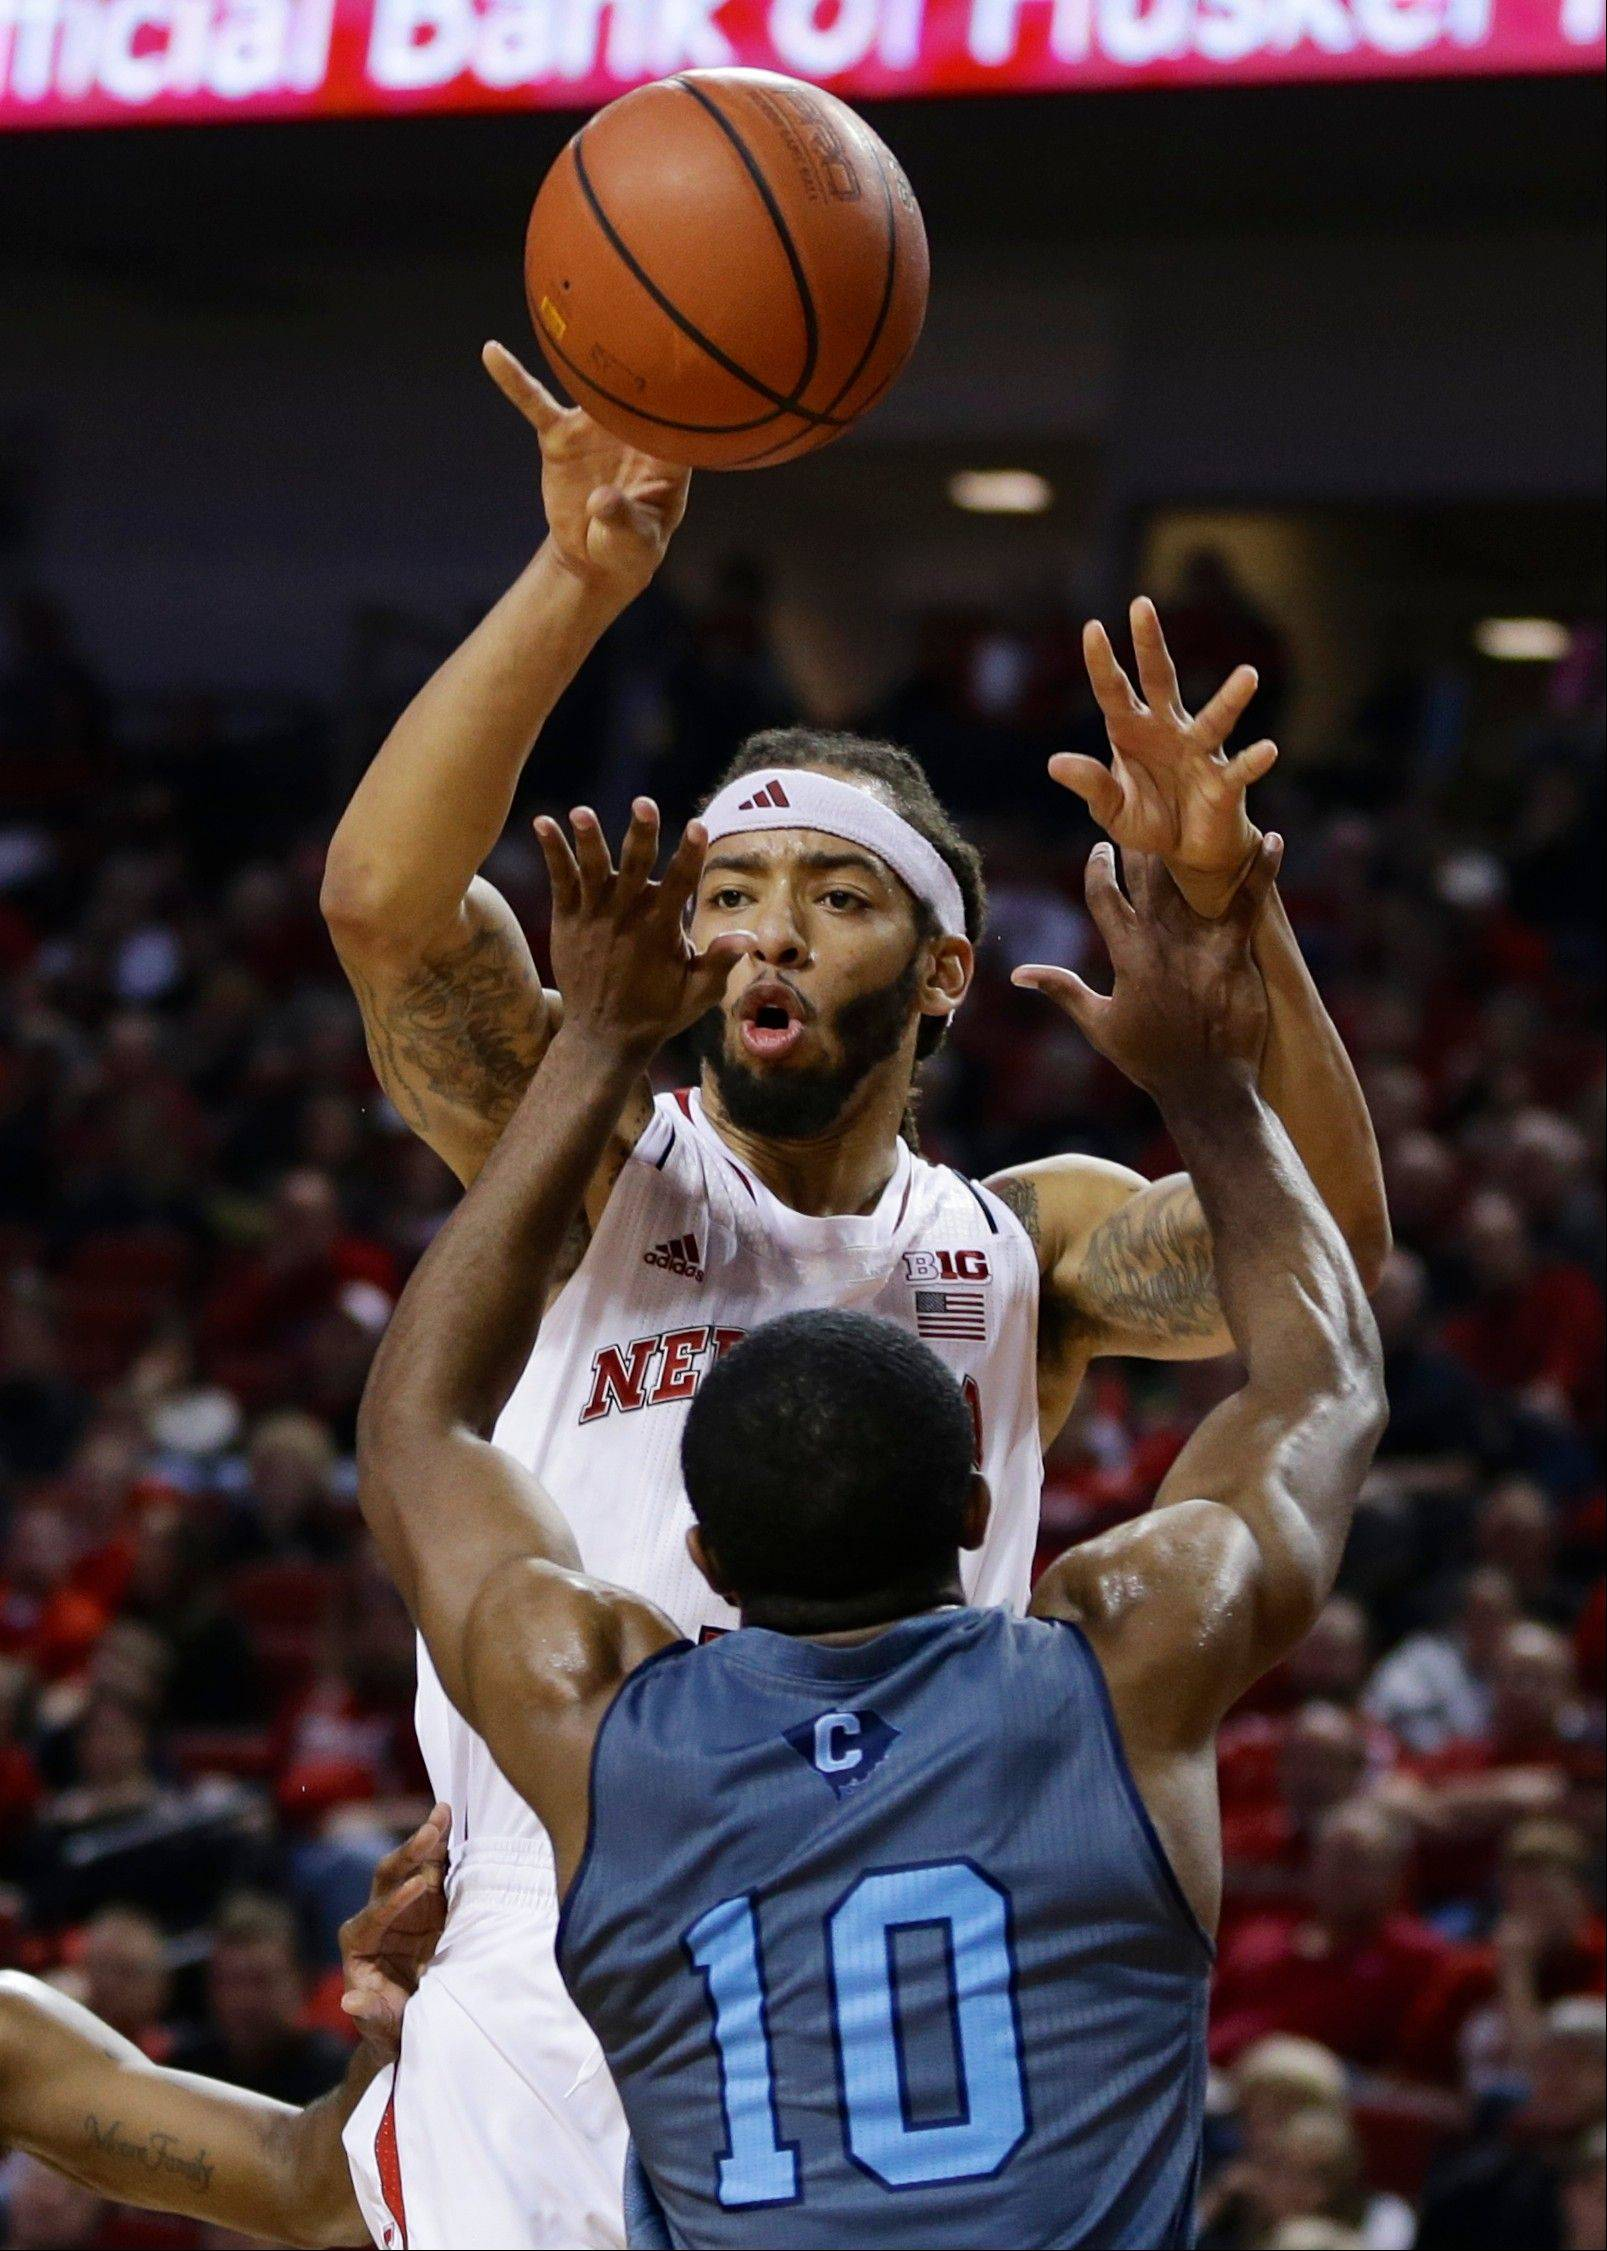 Nebraska's Terran Petteway passes the ball over The Citadel's Marshall Harris III during the second half of Saturday's game in Lincoln, Neb.